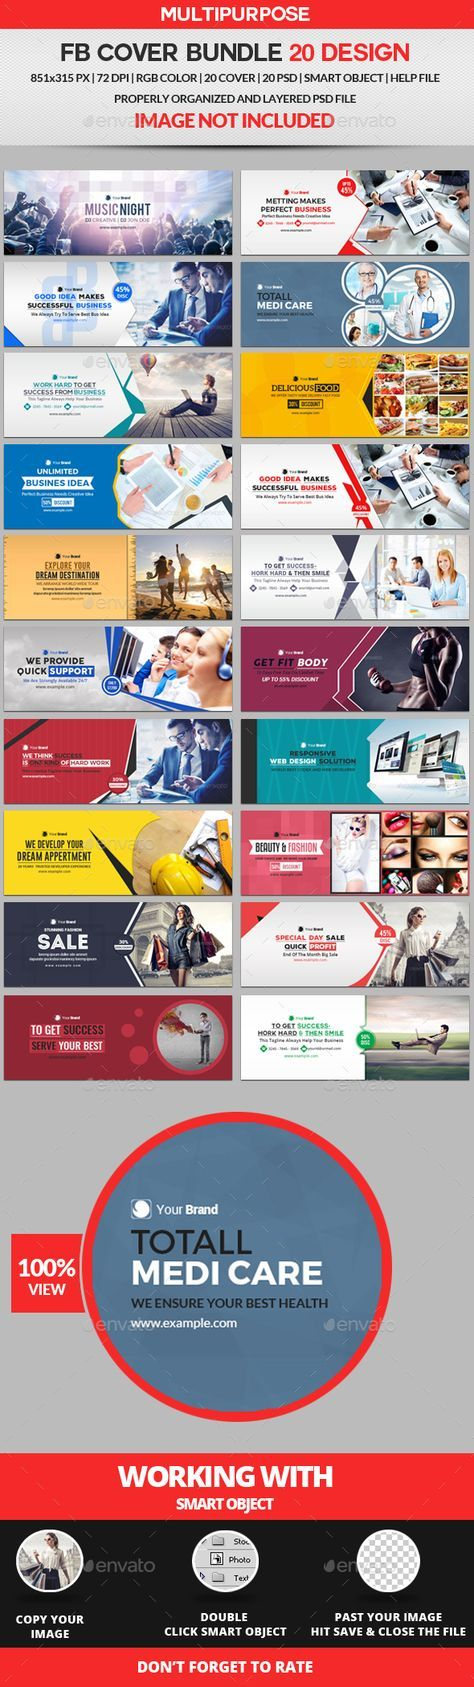 Facebook Cover Bundle Two 20 Design